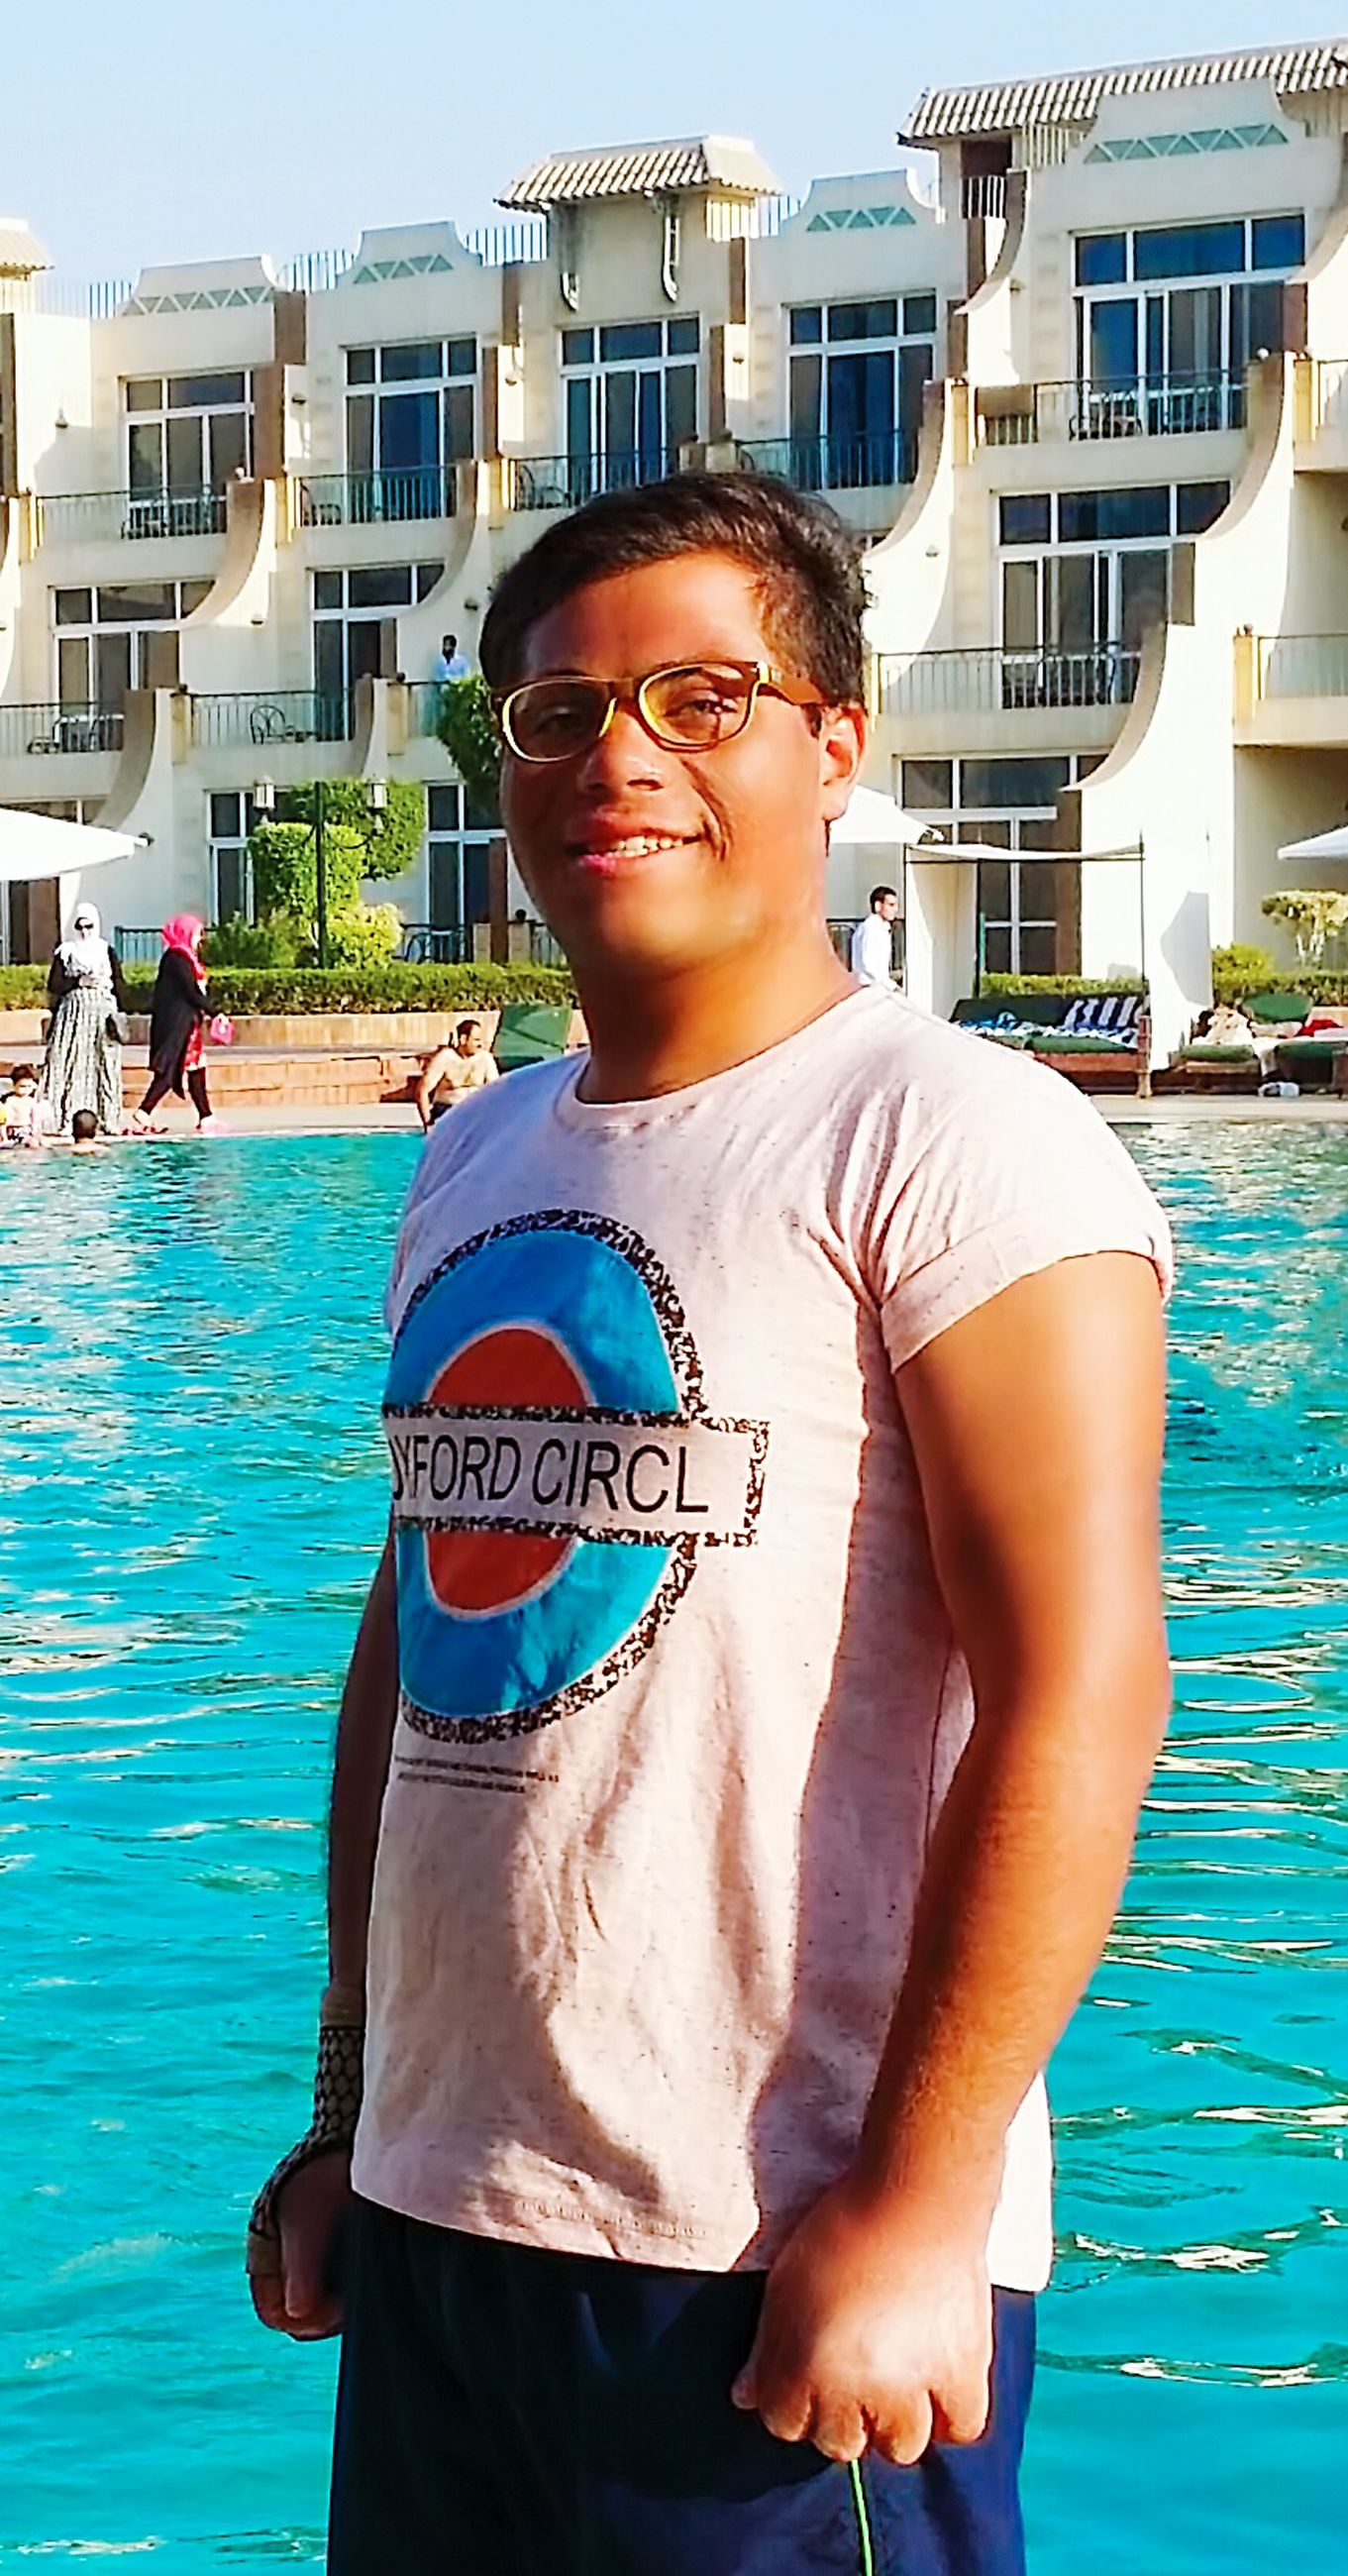 person, water, lifestyles, looking at camera, building exterior, portrait, built structure, young adult, leisure activity, front view, smiling, casual clothing, architecture, blue, swimming pool, happiness, three quarter length, standing